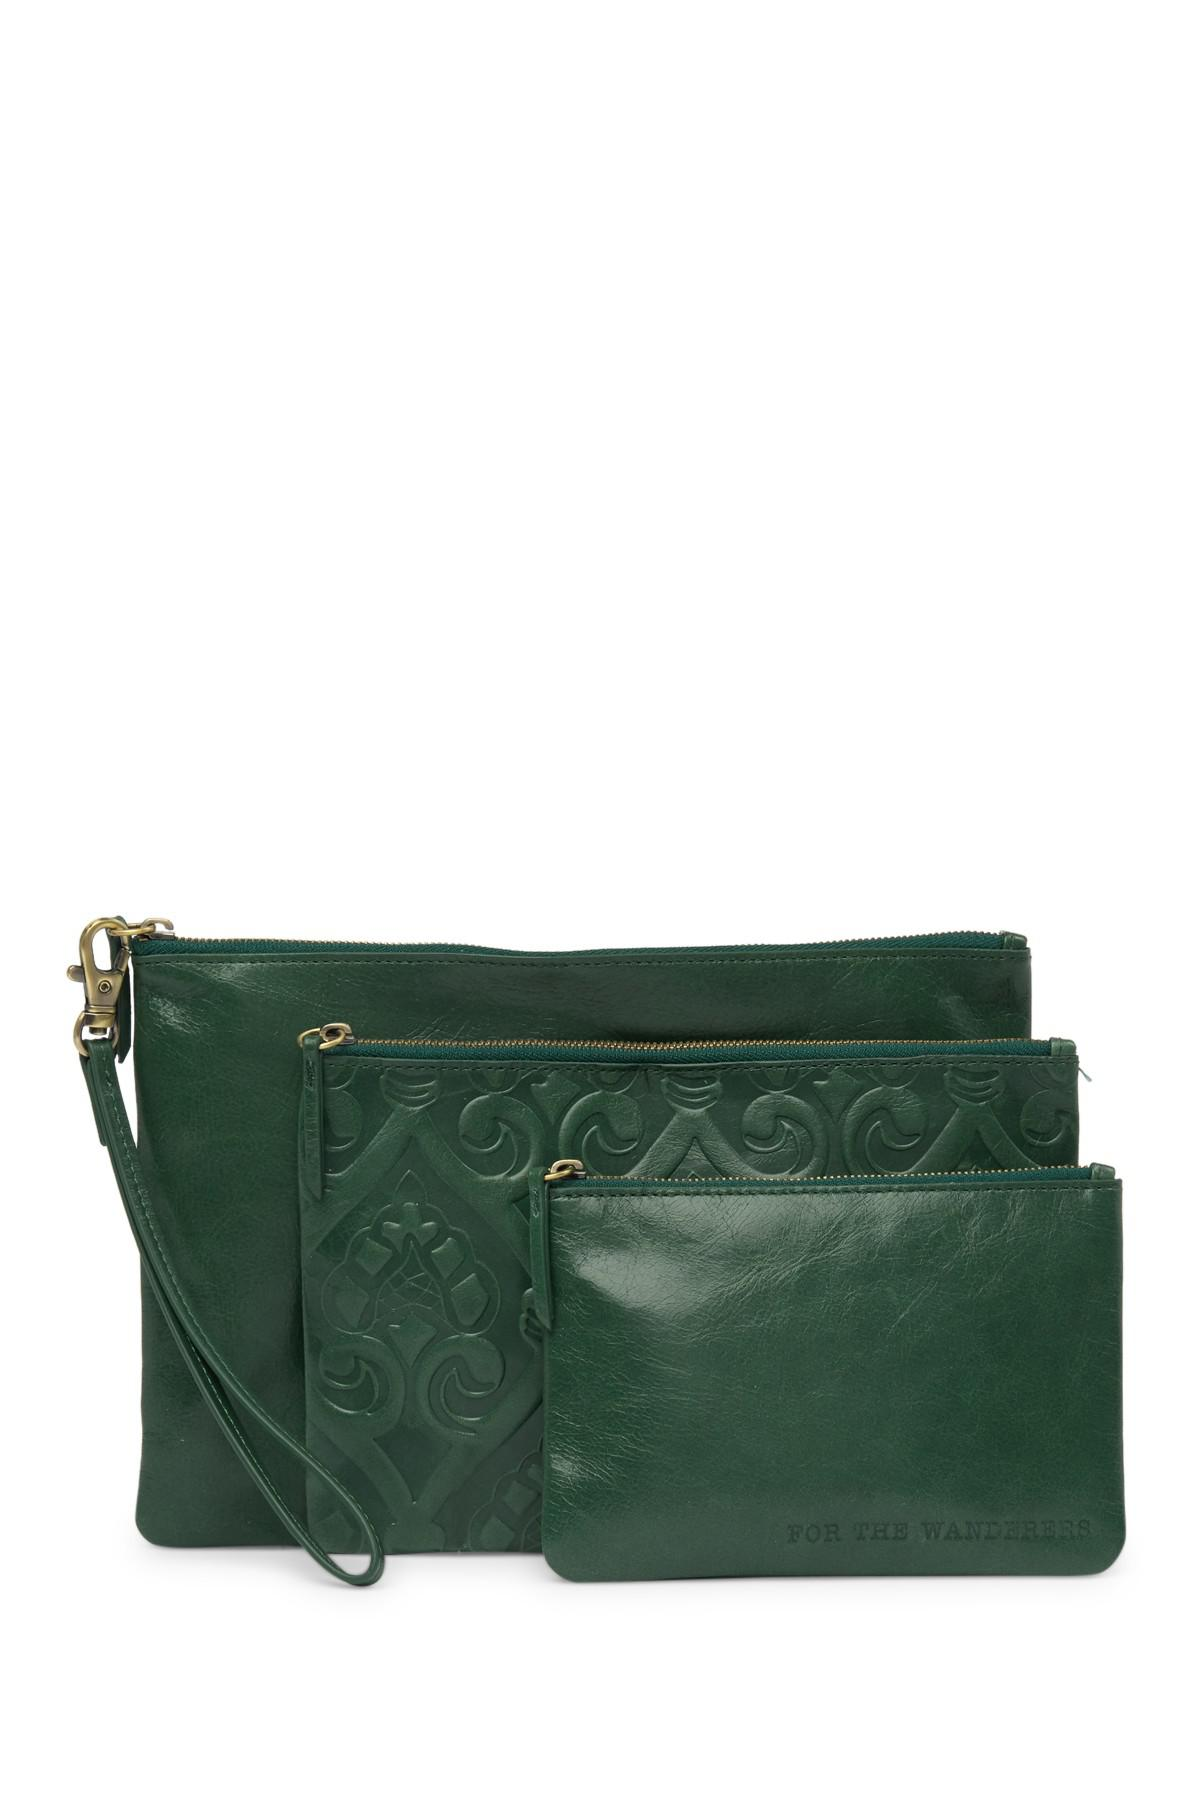 c60d6543ec7e Lyst - Hobo Triad Leather Pouch Set in Green